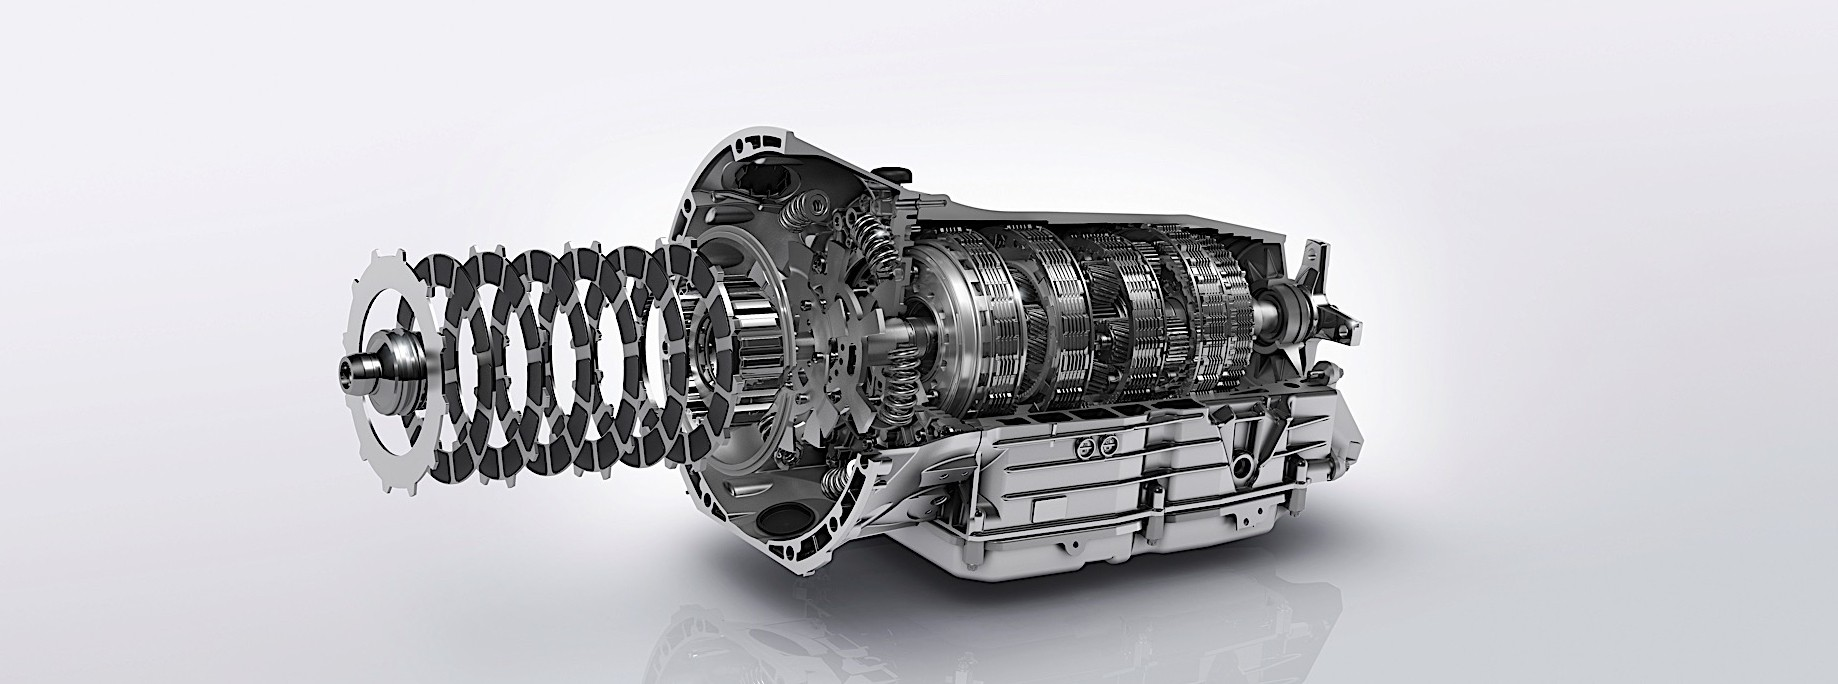 Mercedes-AMG's MCT Transmission Explained In Layman's Terms